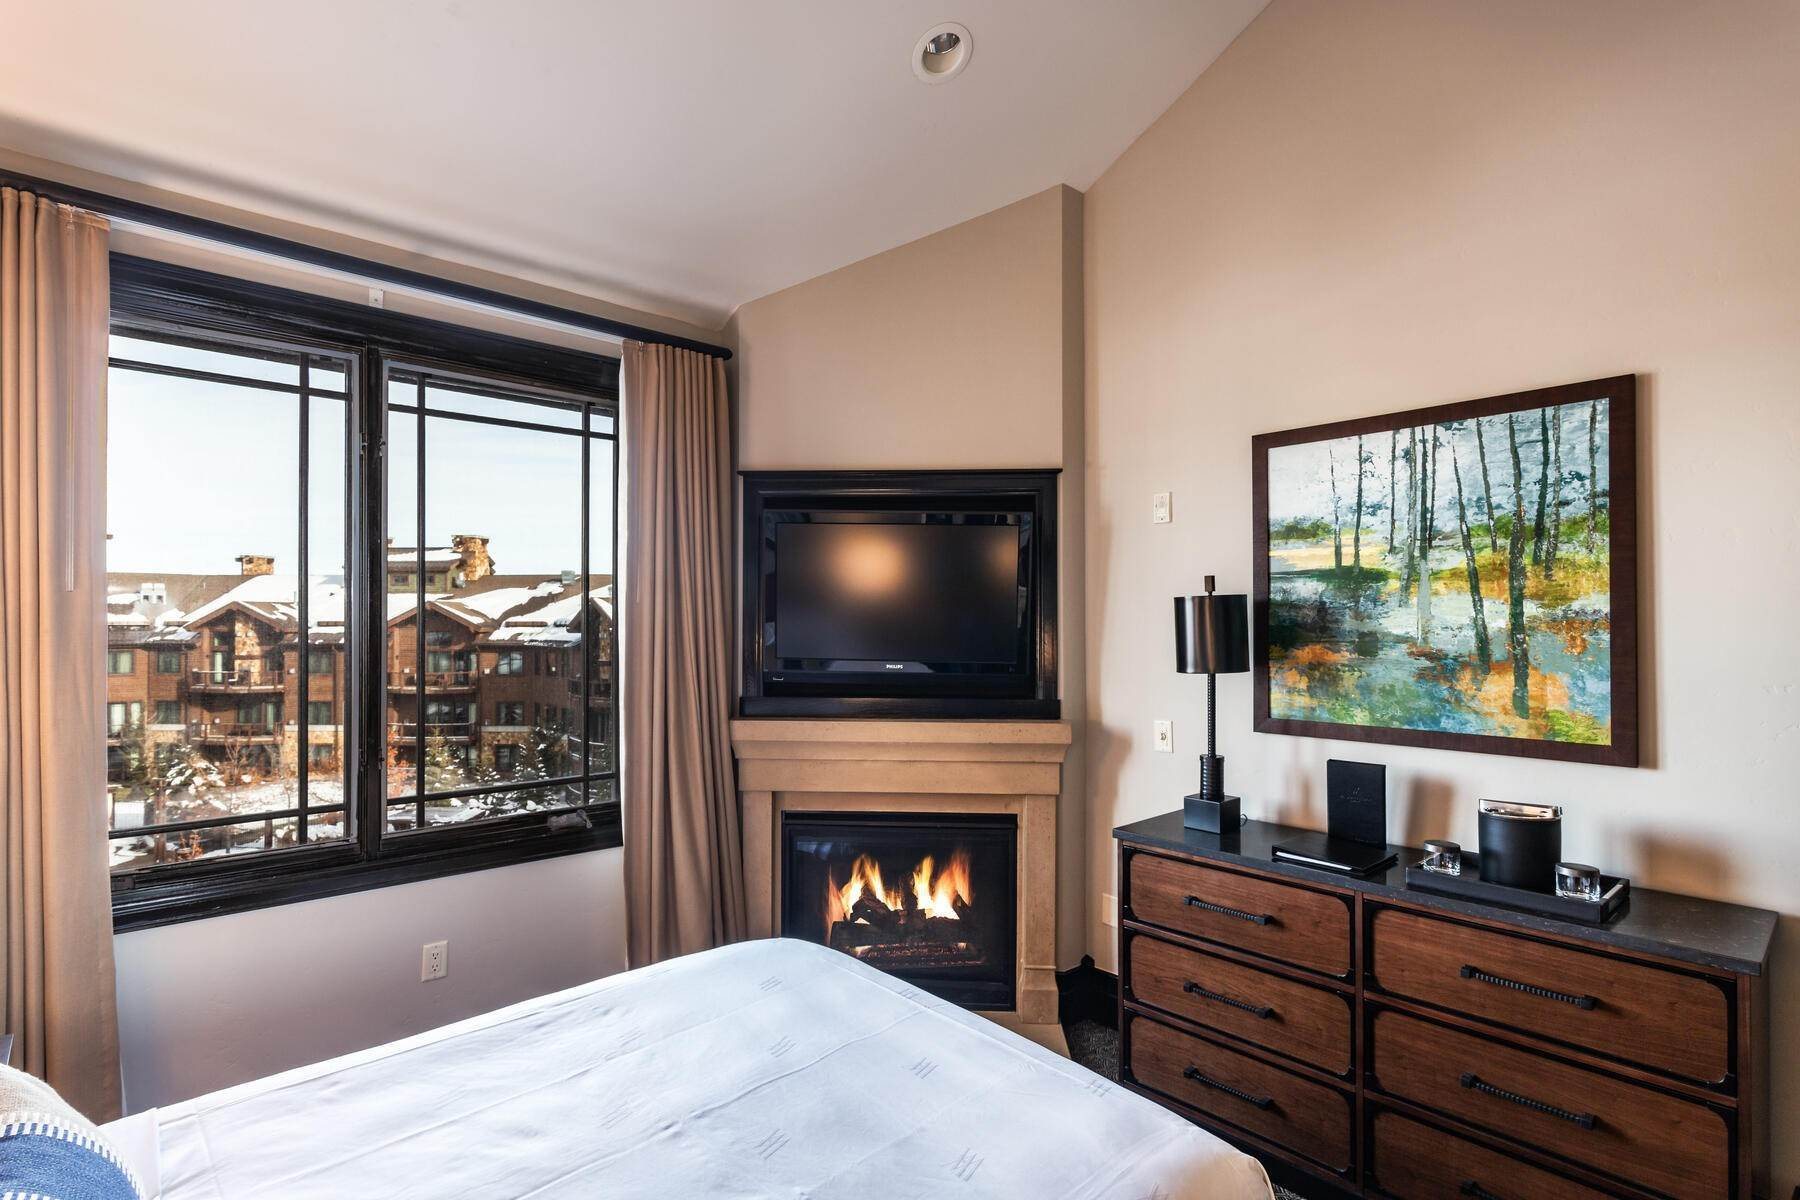 22. Condominiums for Sale at Only 4-Bedroom Available at Waldorf Astoria, Top Floor, Penthouse Unit 2100 W Frostwood Blvd, #7117 Park City, Utah 84098 United States